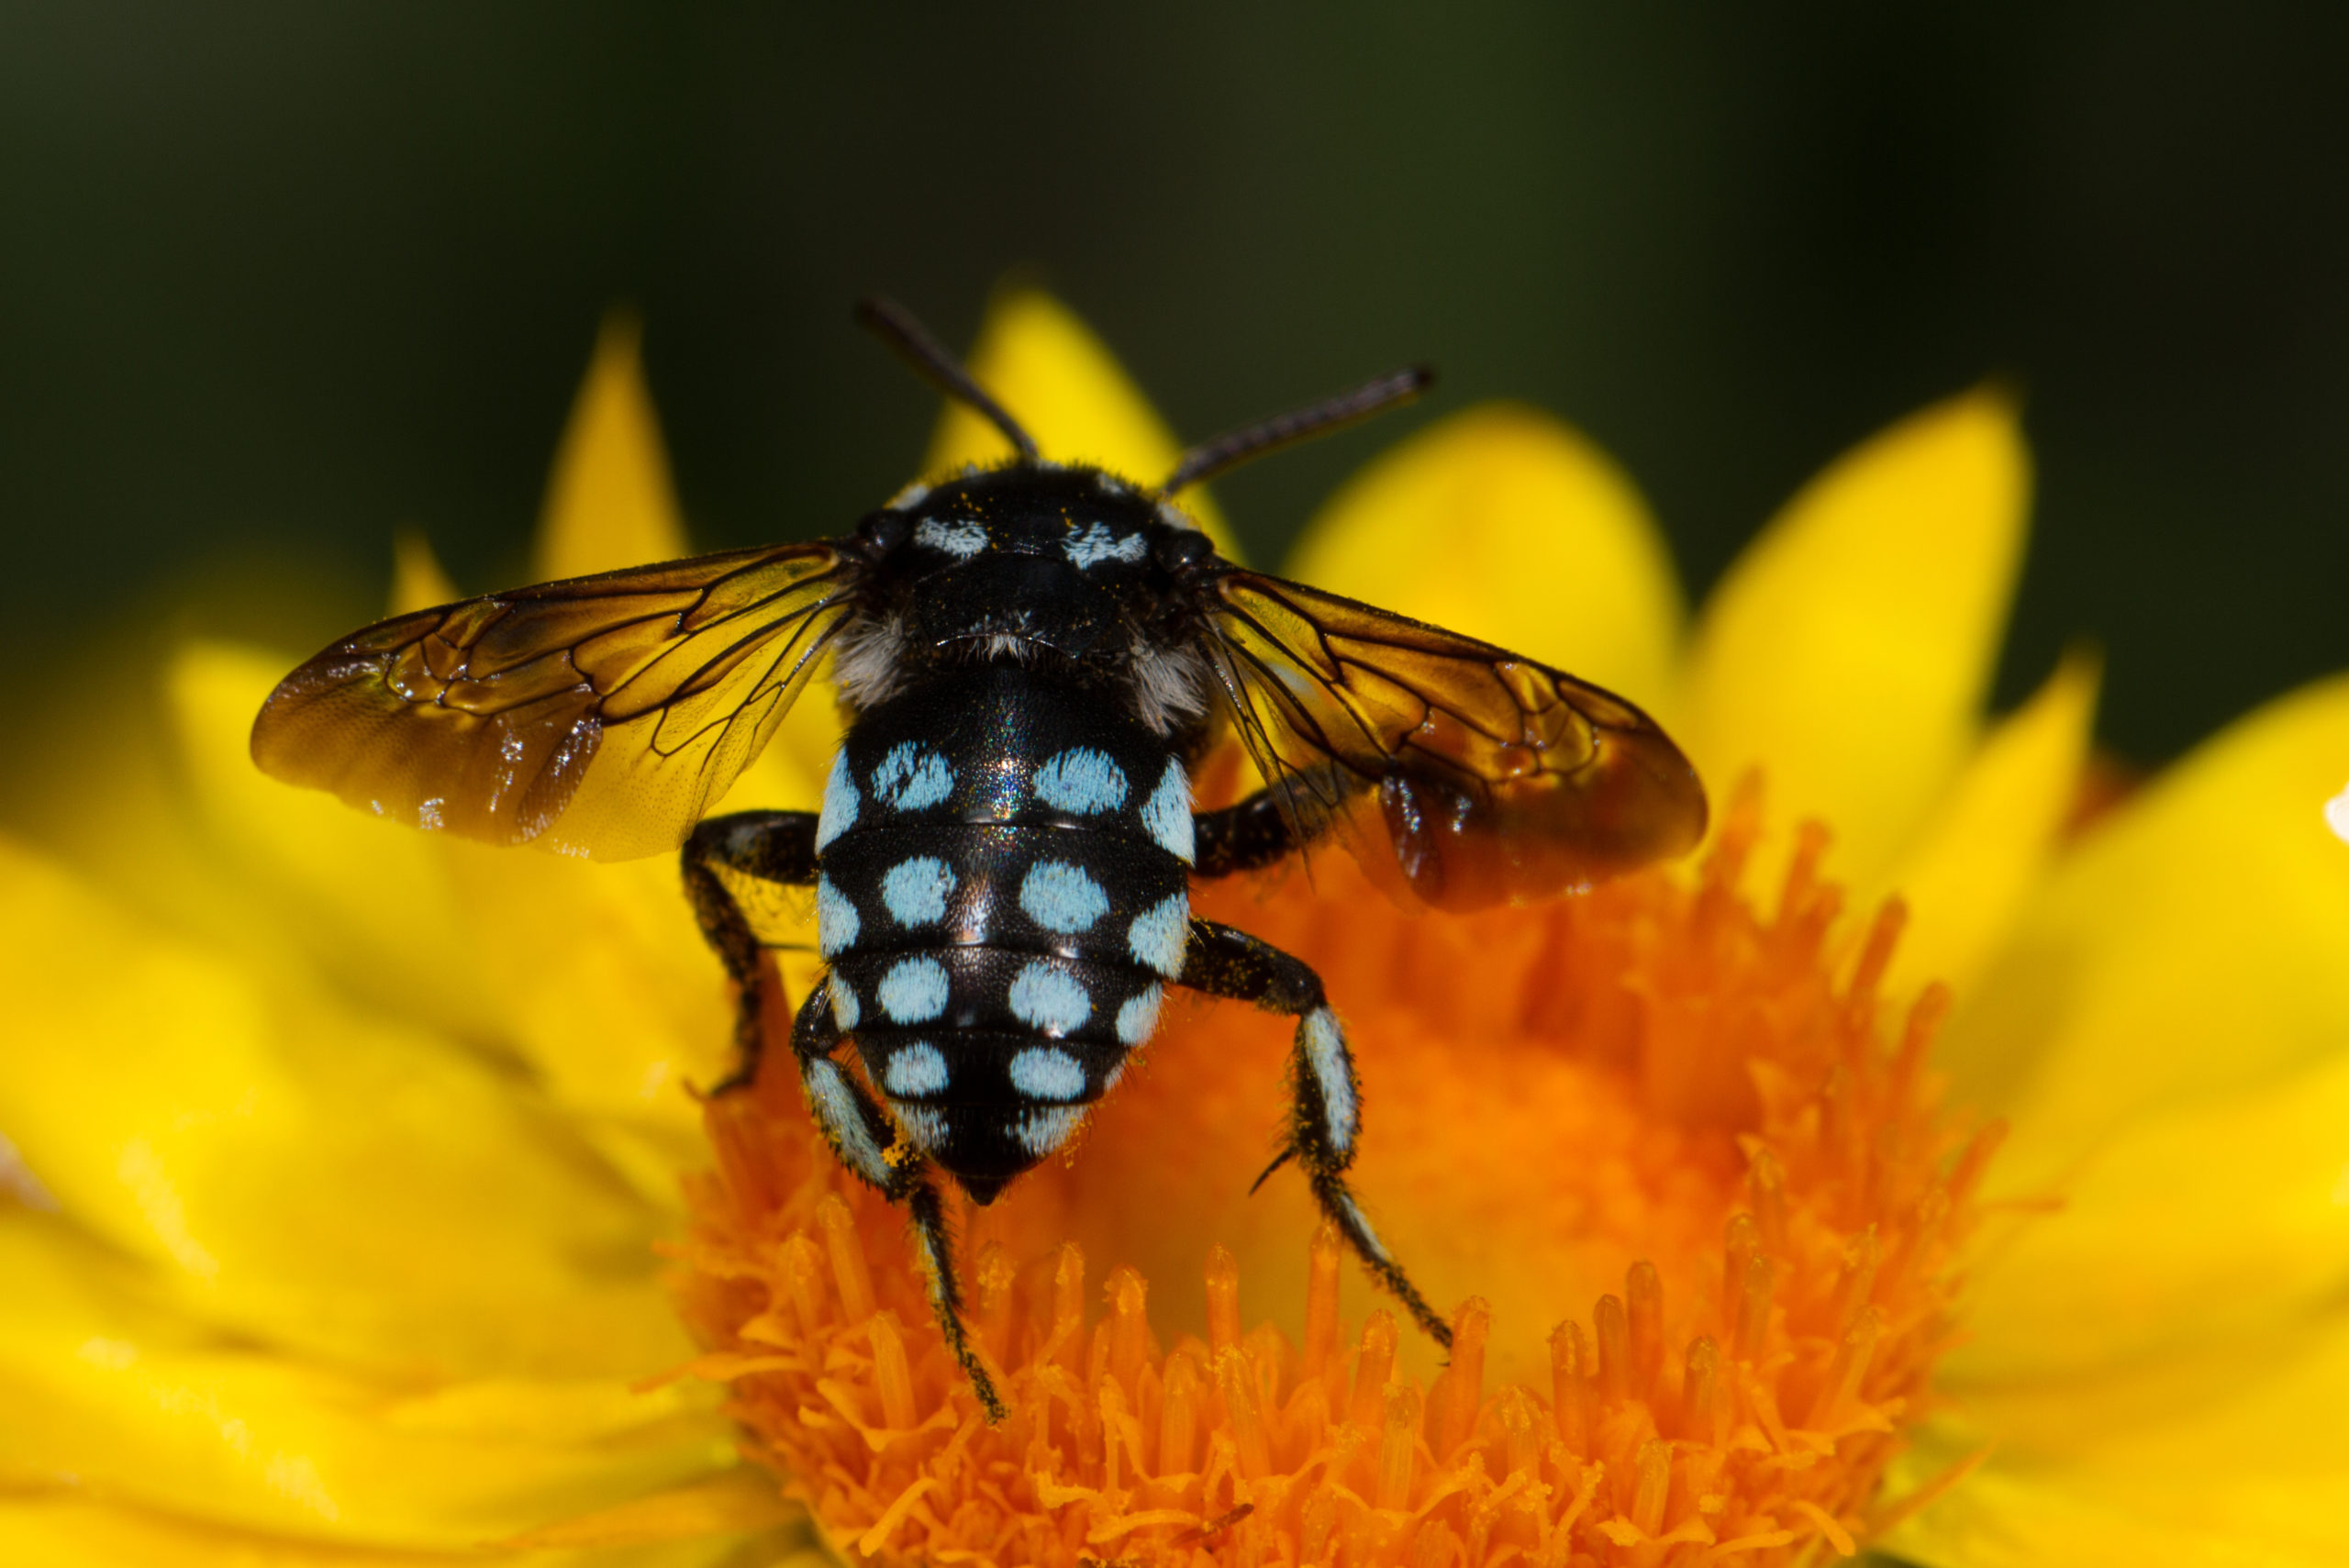 Blue spotted cuckoo bee